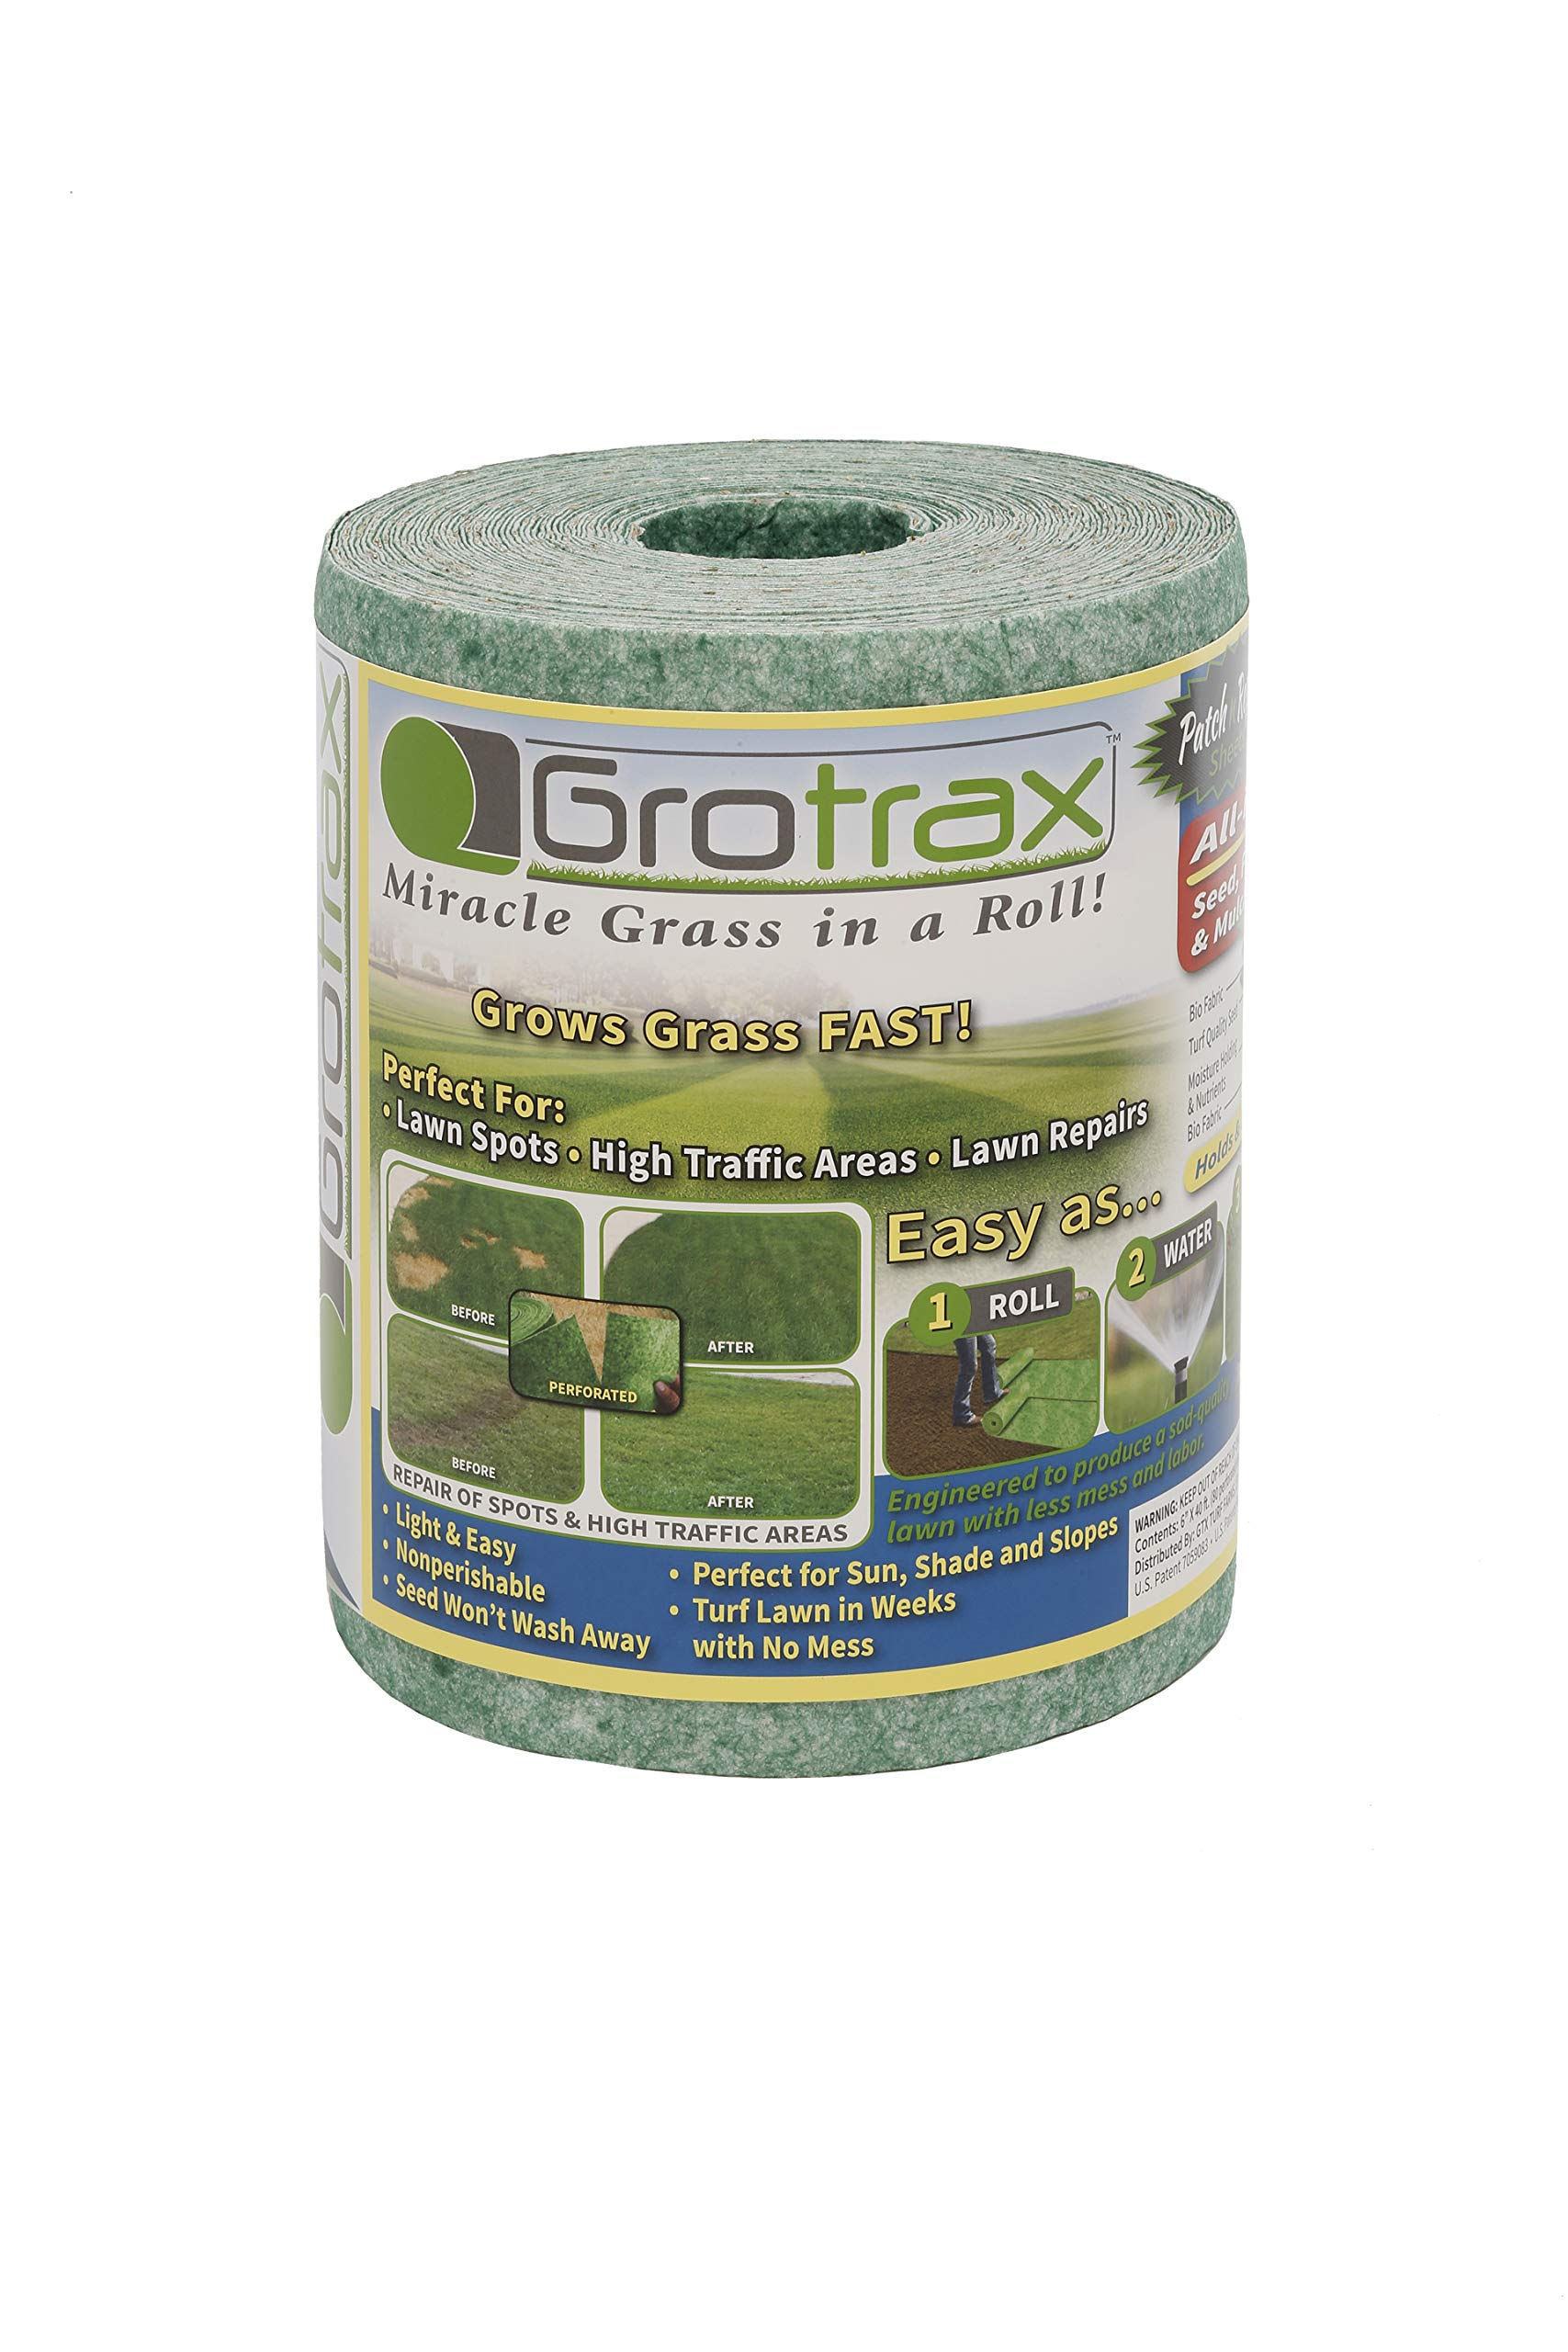 Grotrax Patch n' Repair Year Round Green 20 Square Foot roll Grass mat